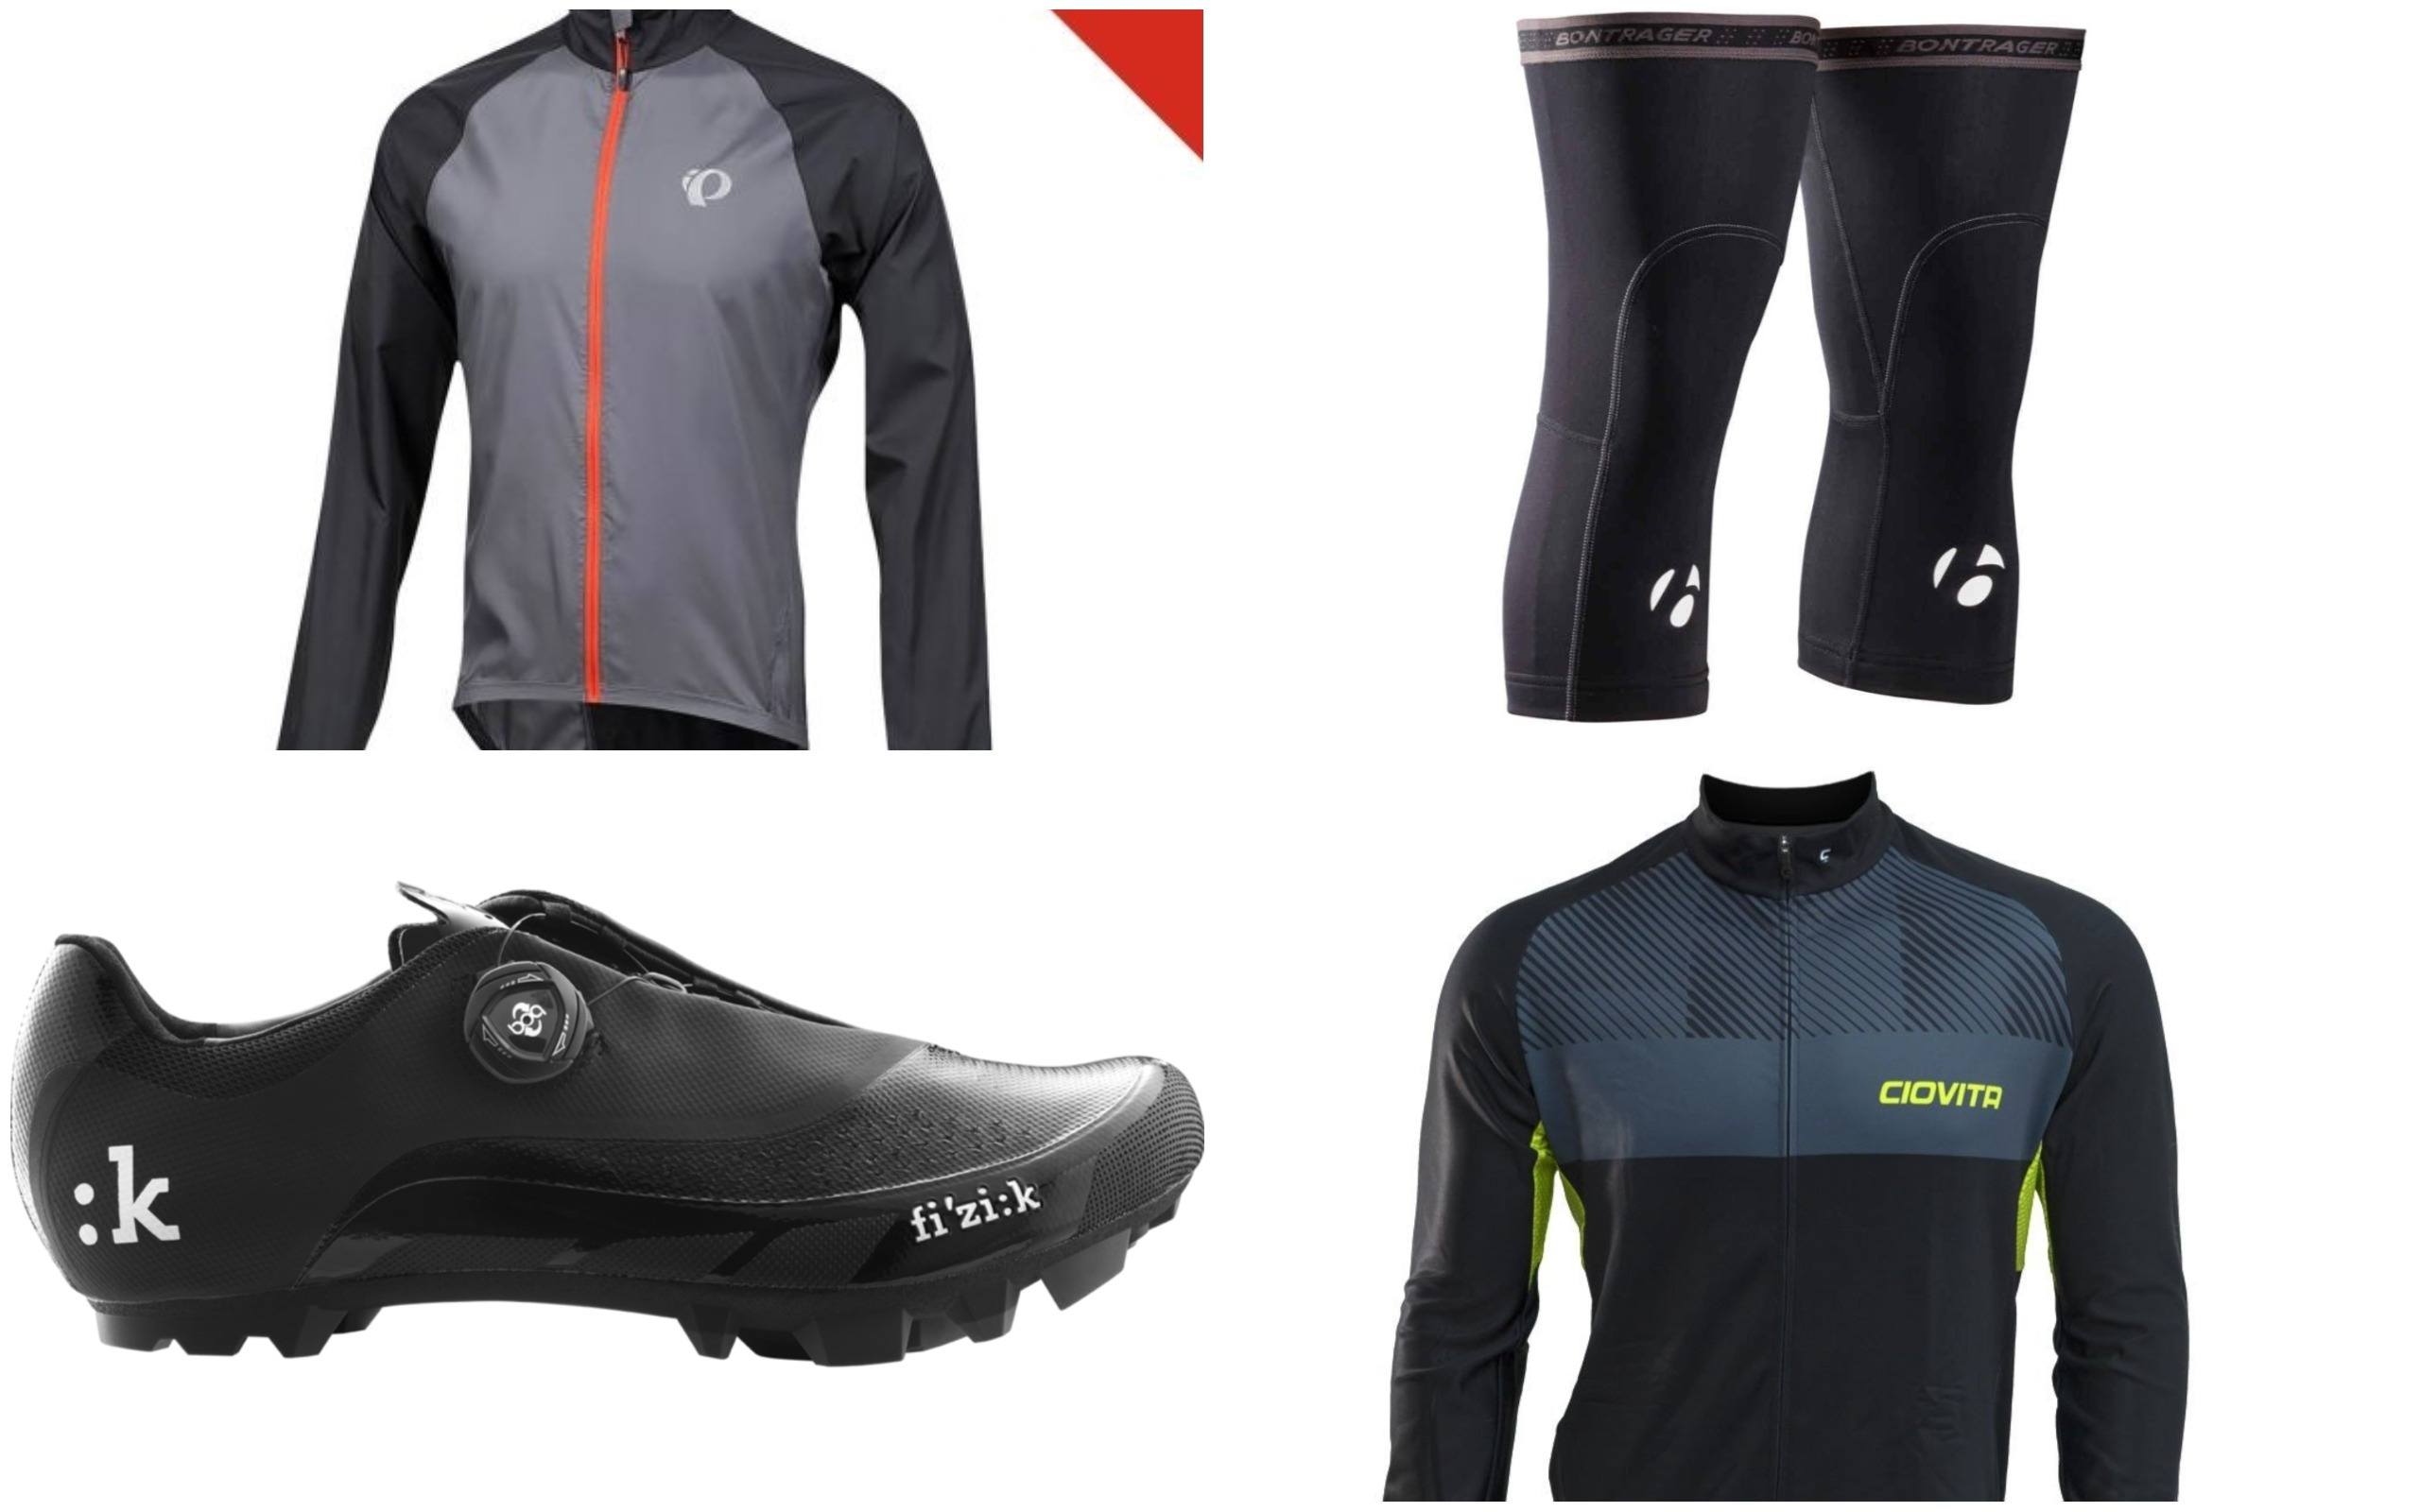 0b49f32ab Top Winter Cycling Apparel for 2018